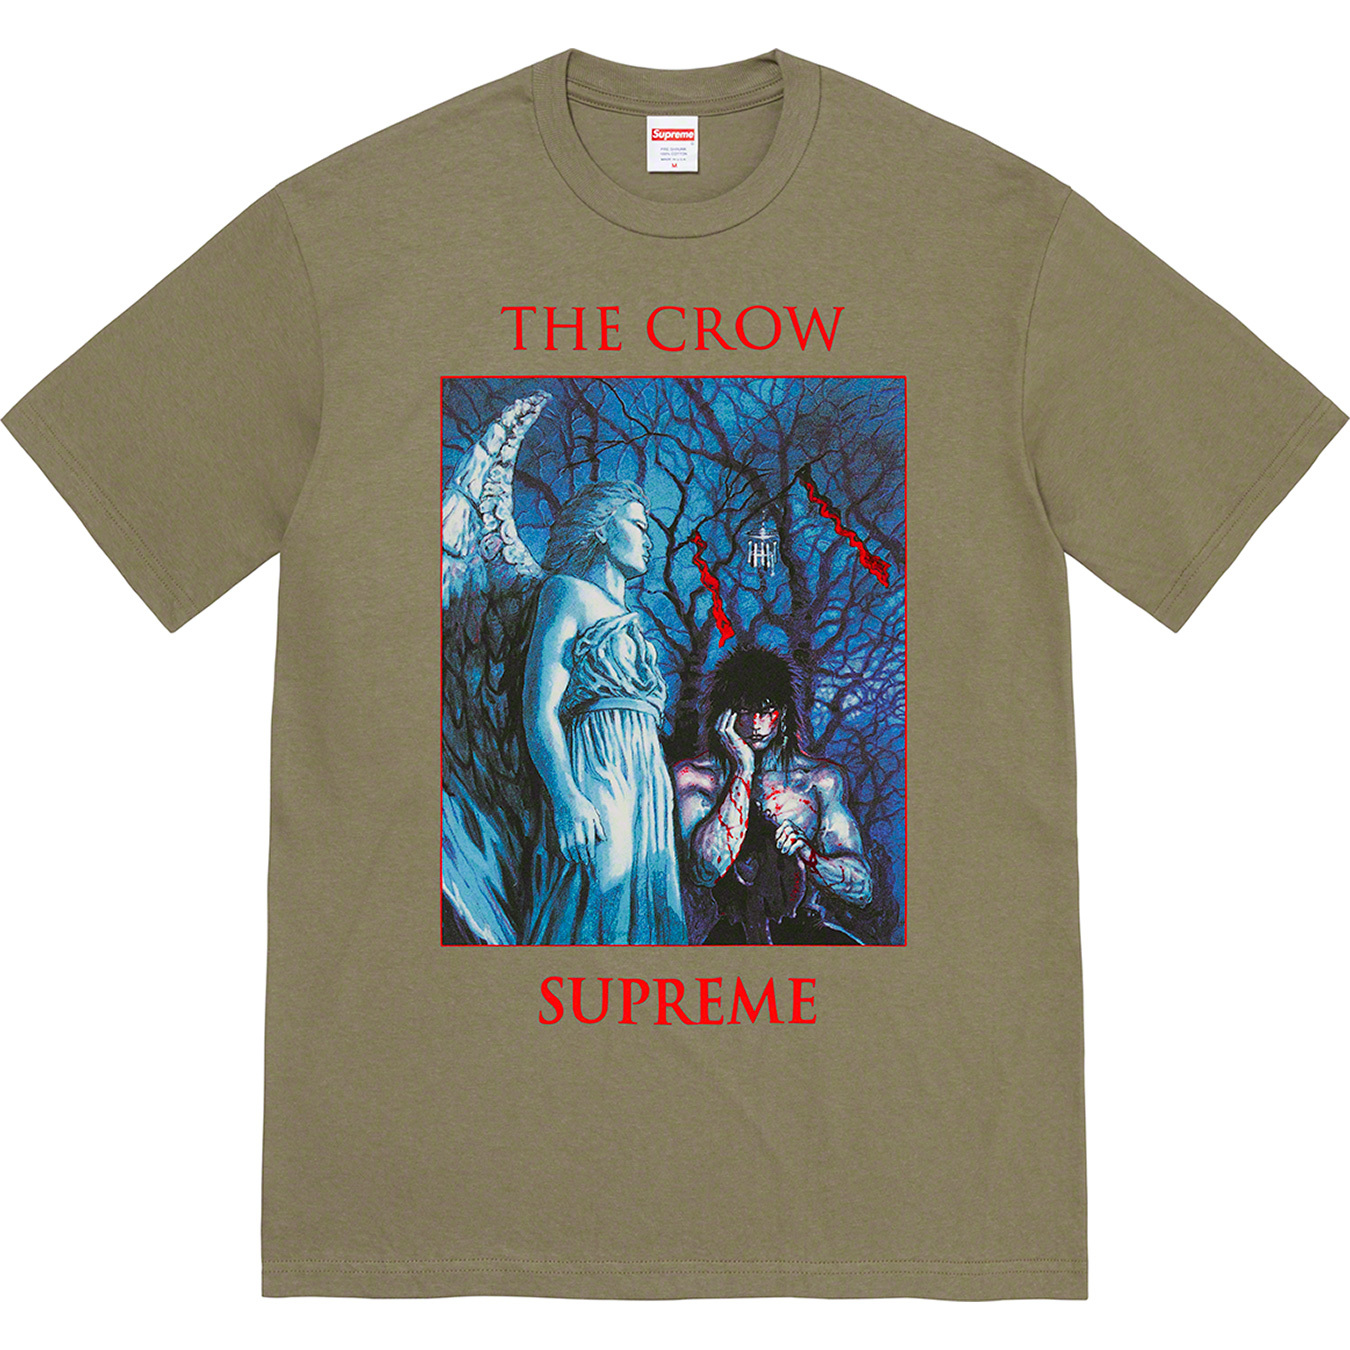 supreme-the-crow-21aw-21fw-collaboration-release-20210918-week4-tee